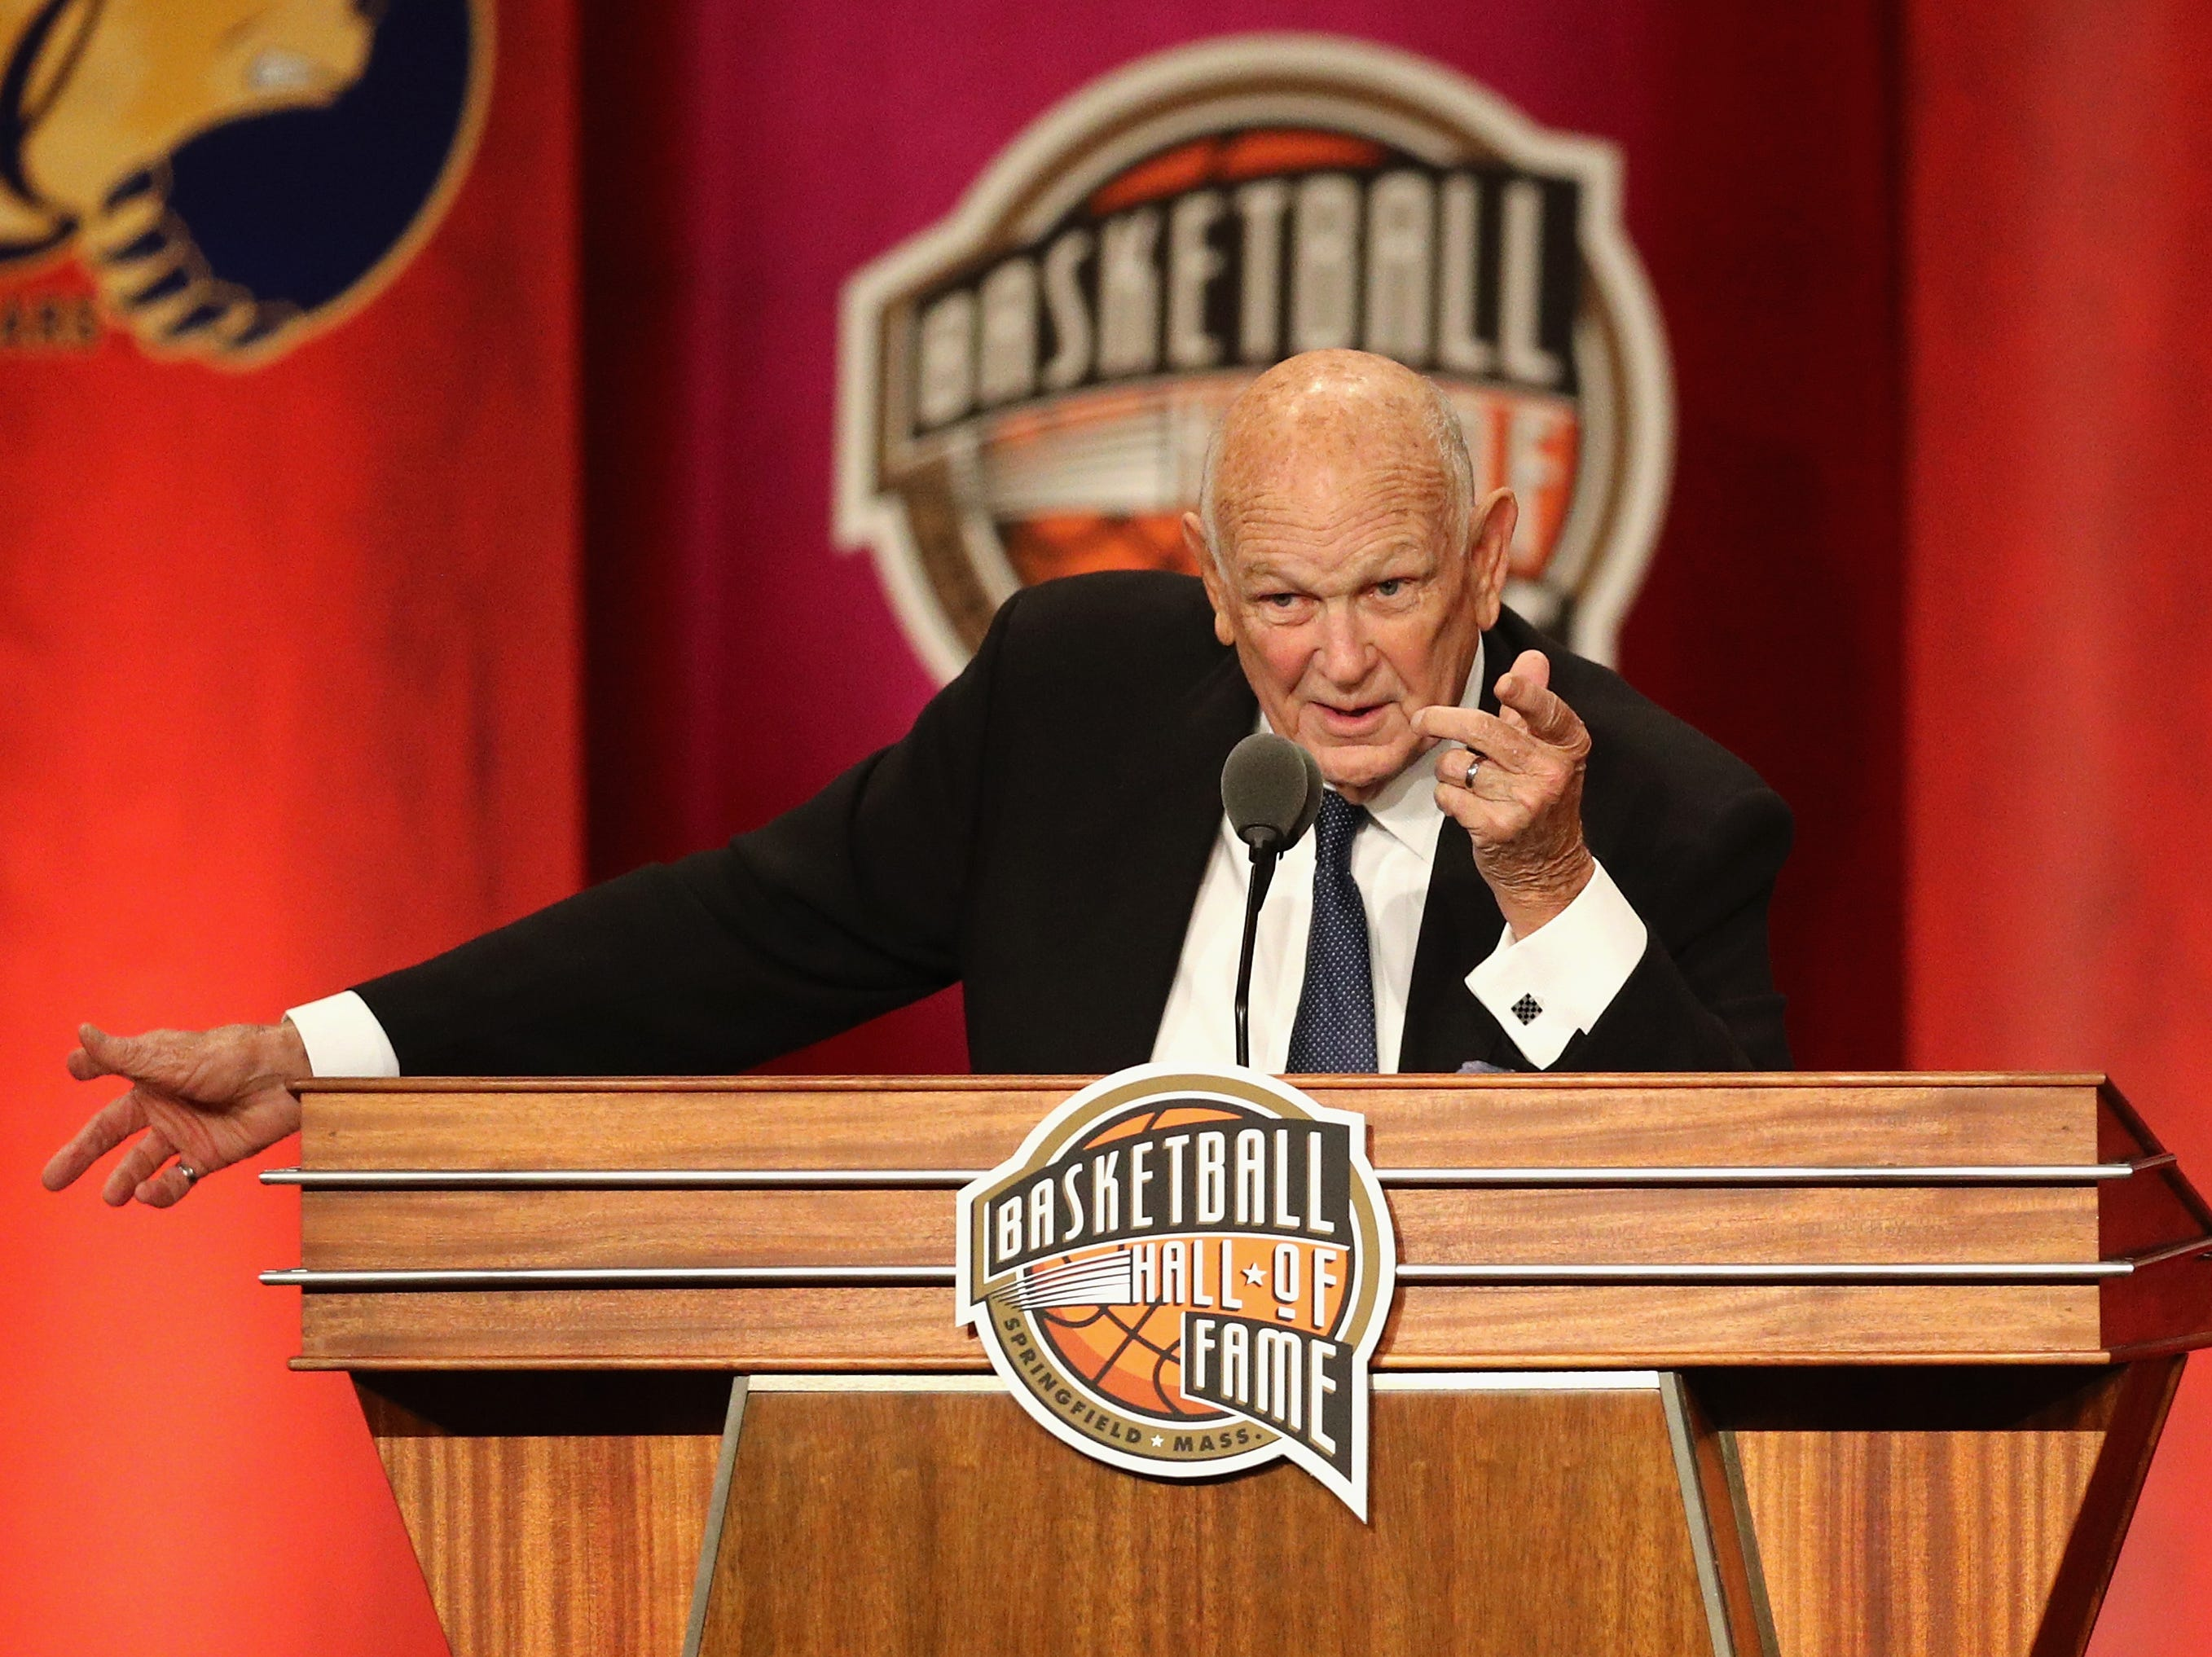 Charles 'Lefty' Driesell speaks during the 2018 Basketball Hall of Fame Enshrinement Ceremony.